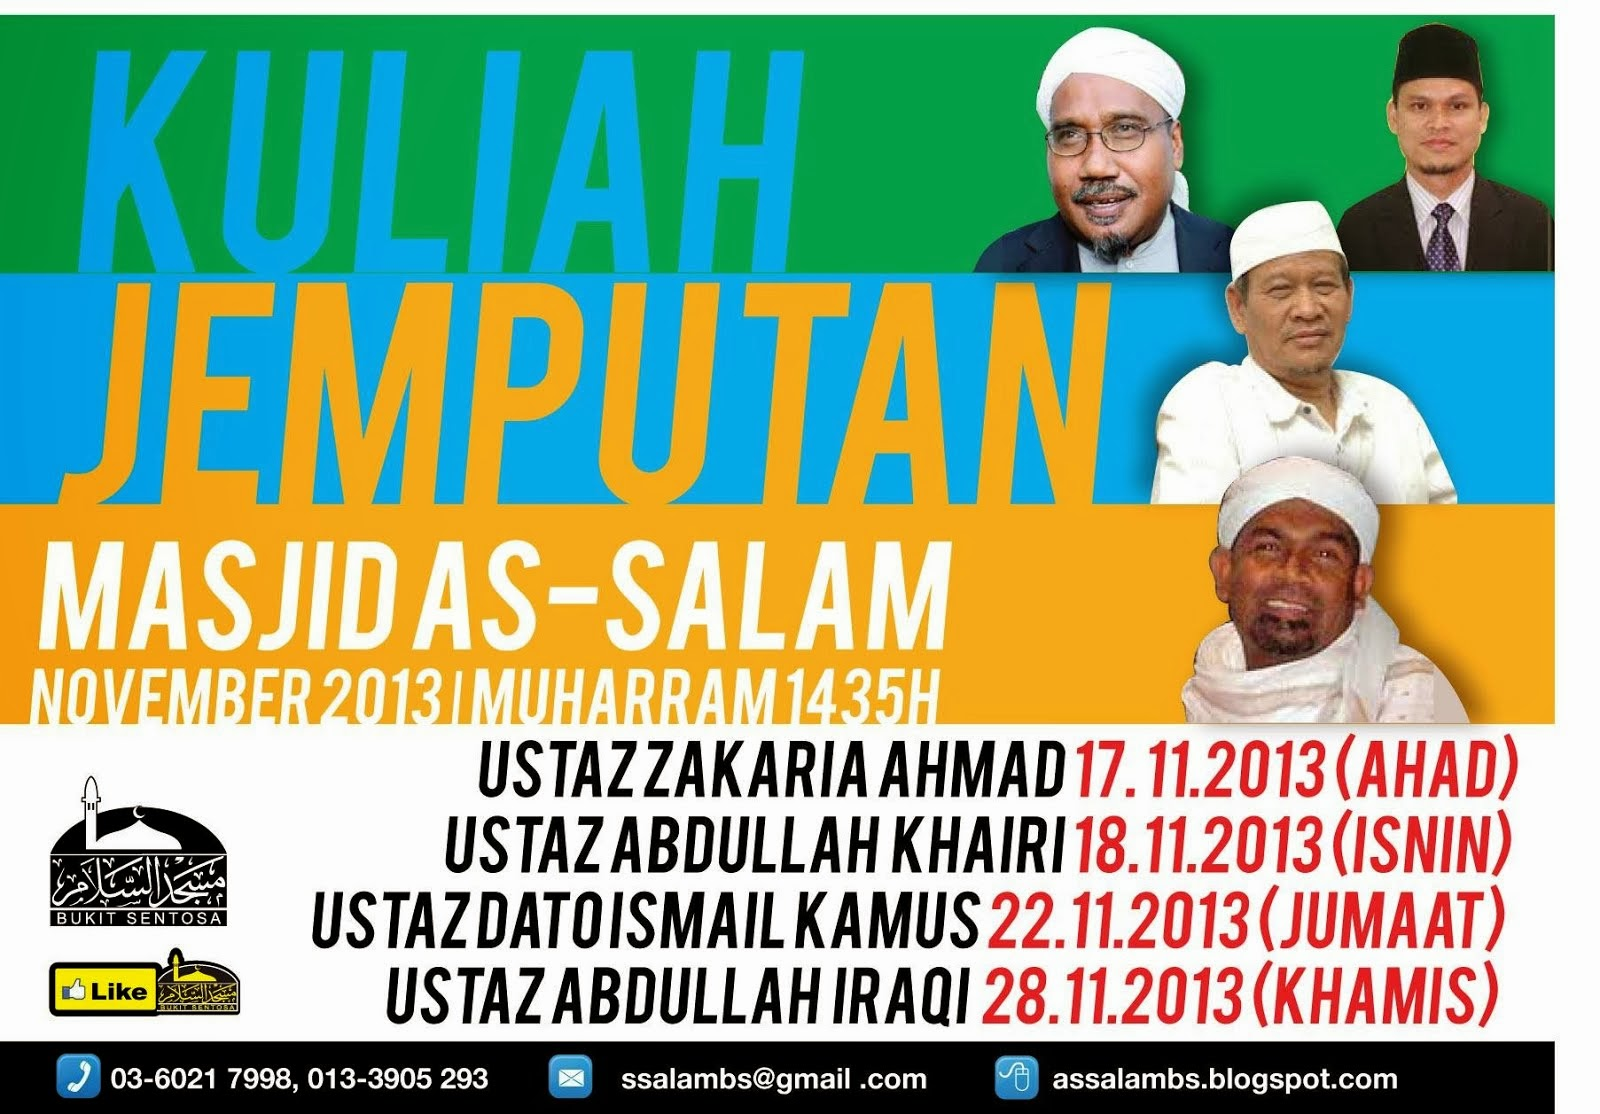 THE BEST OF CERAMAH